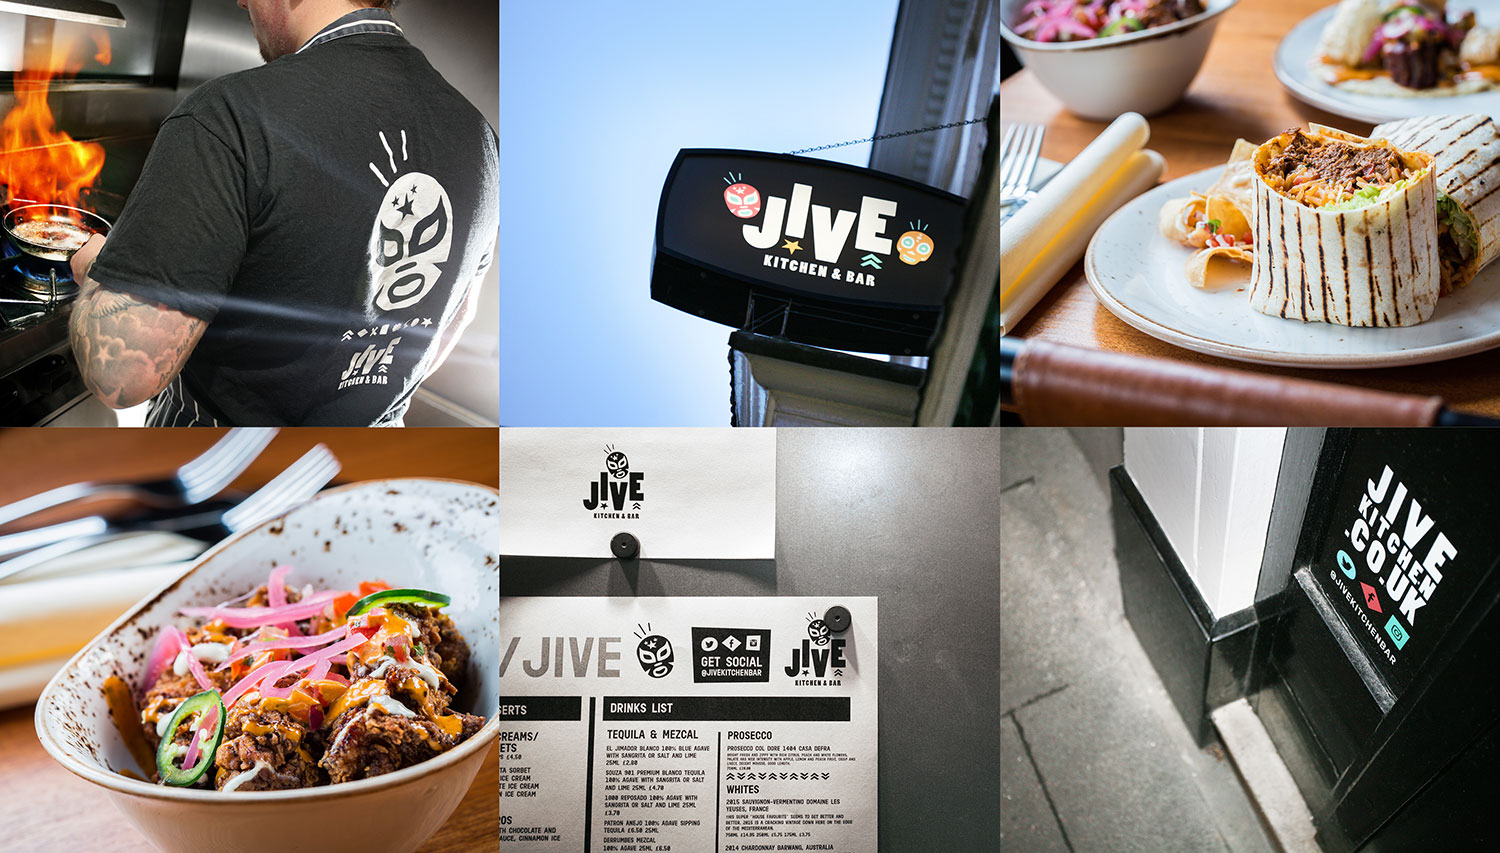 jive-design-identity-norwich-how-to-brand-a-restaurant.jpg